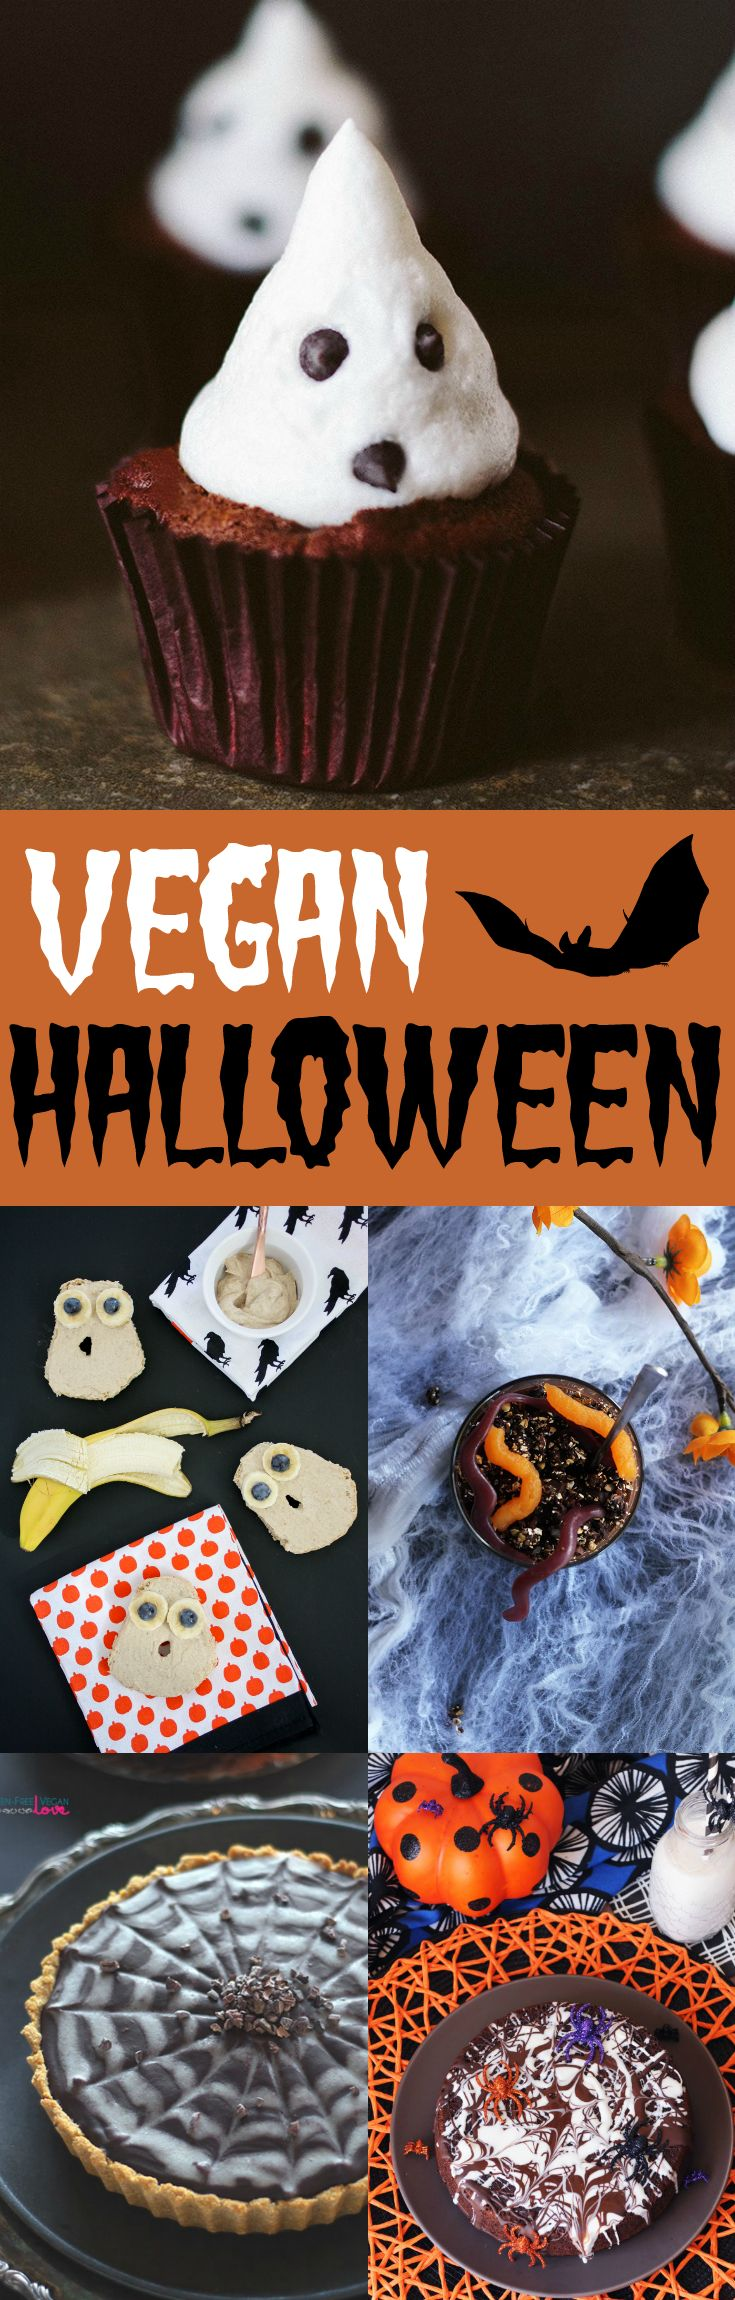 13 spooky vegan Halloween recipes that are so much fun to make! A perfect collection of appetizers and sweets for your Halloween dinner party or buffet.